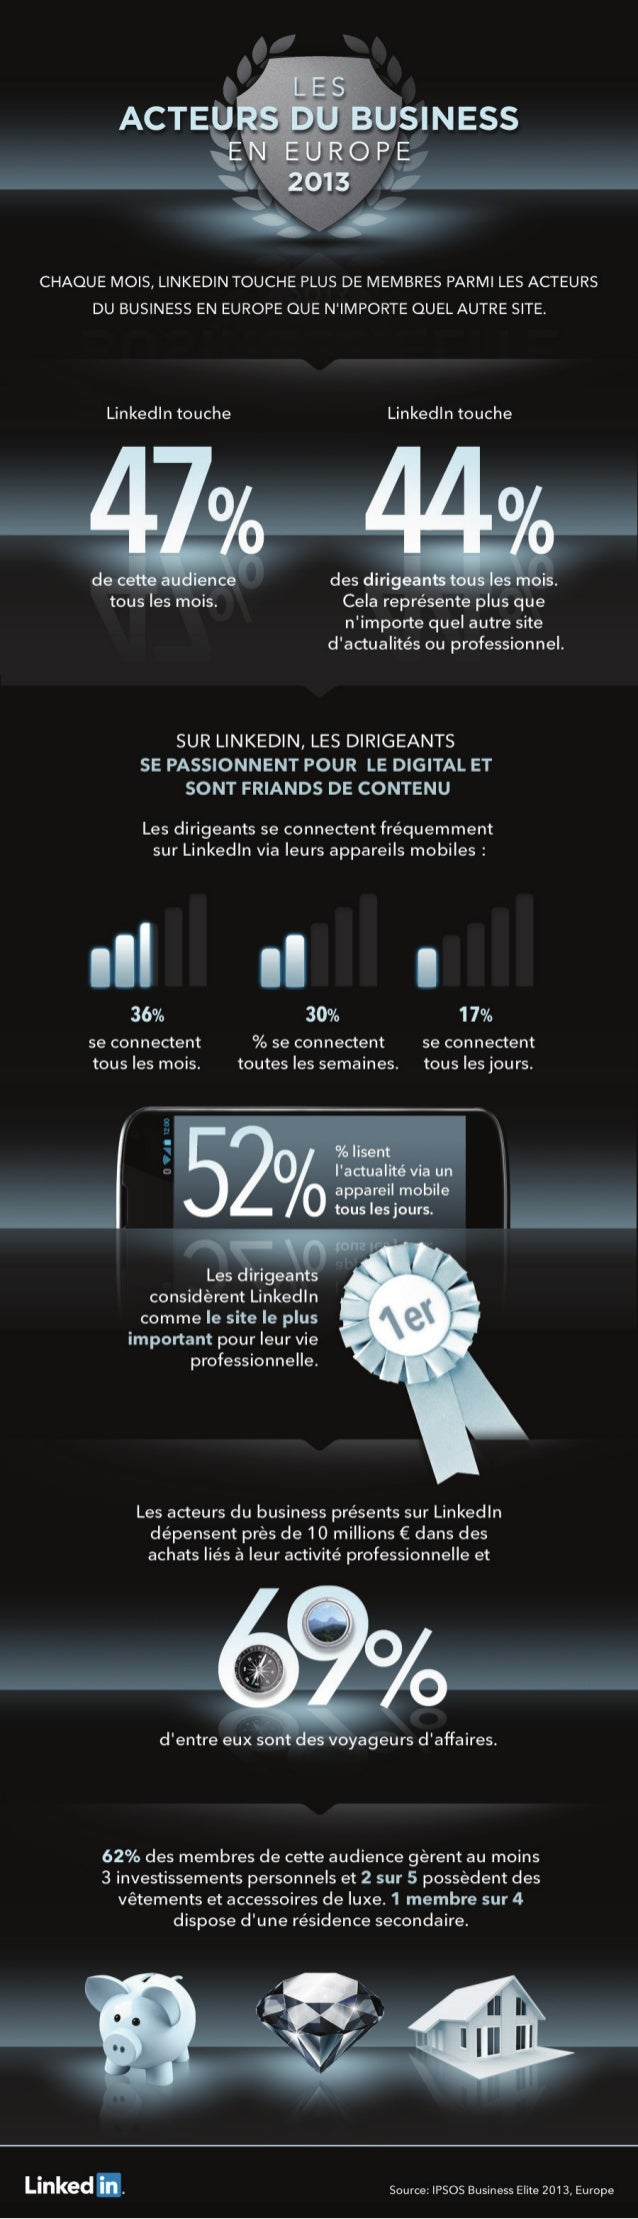 Les acteurs du business en Europe 2013